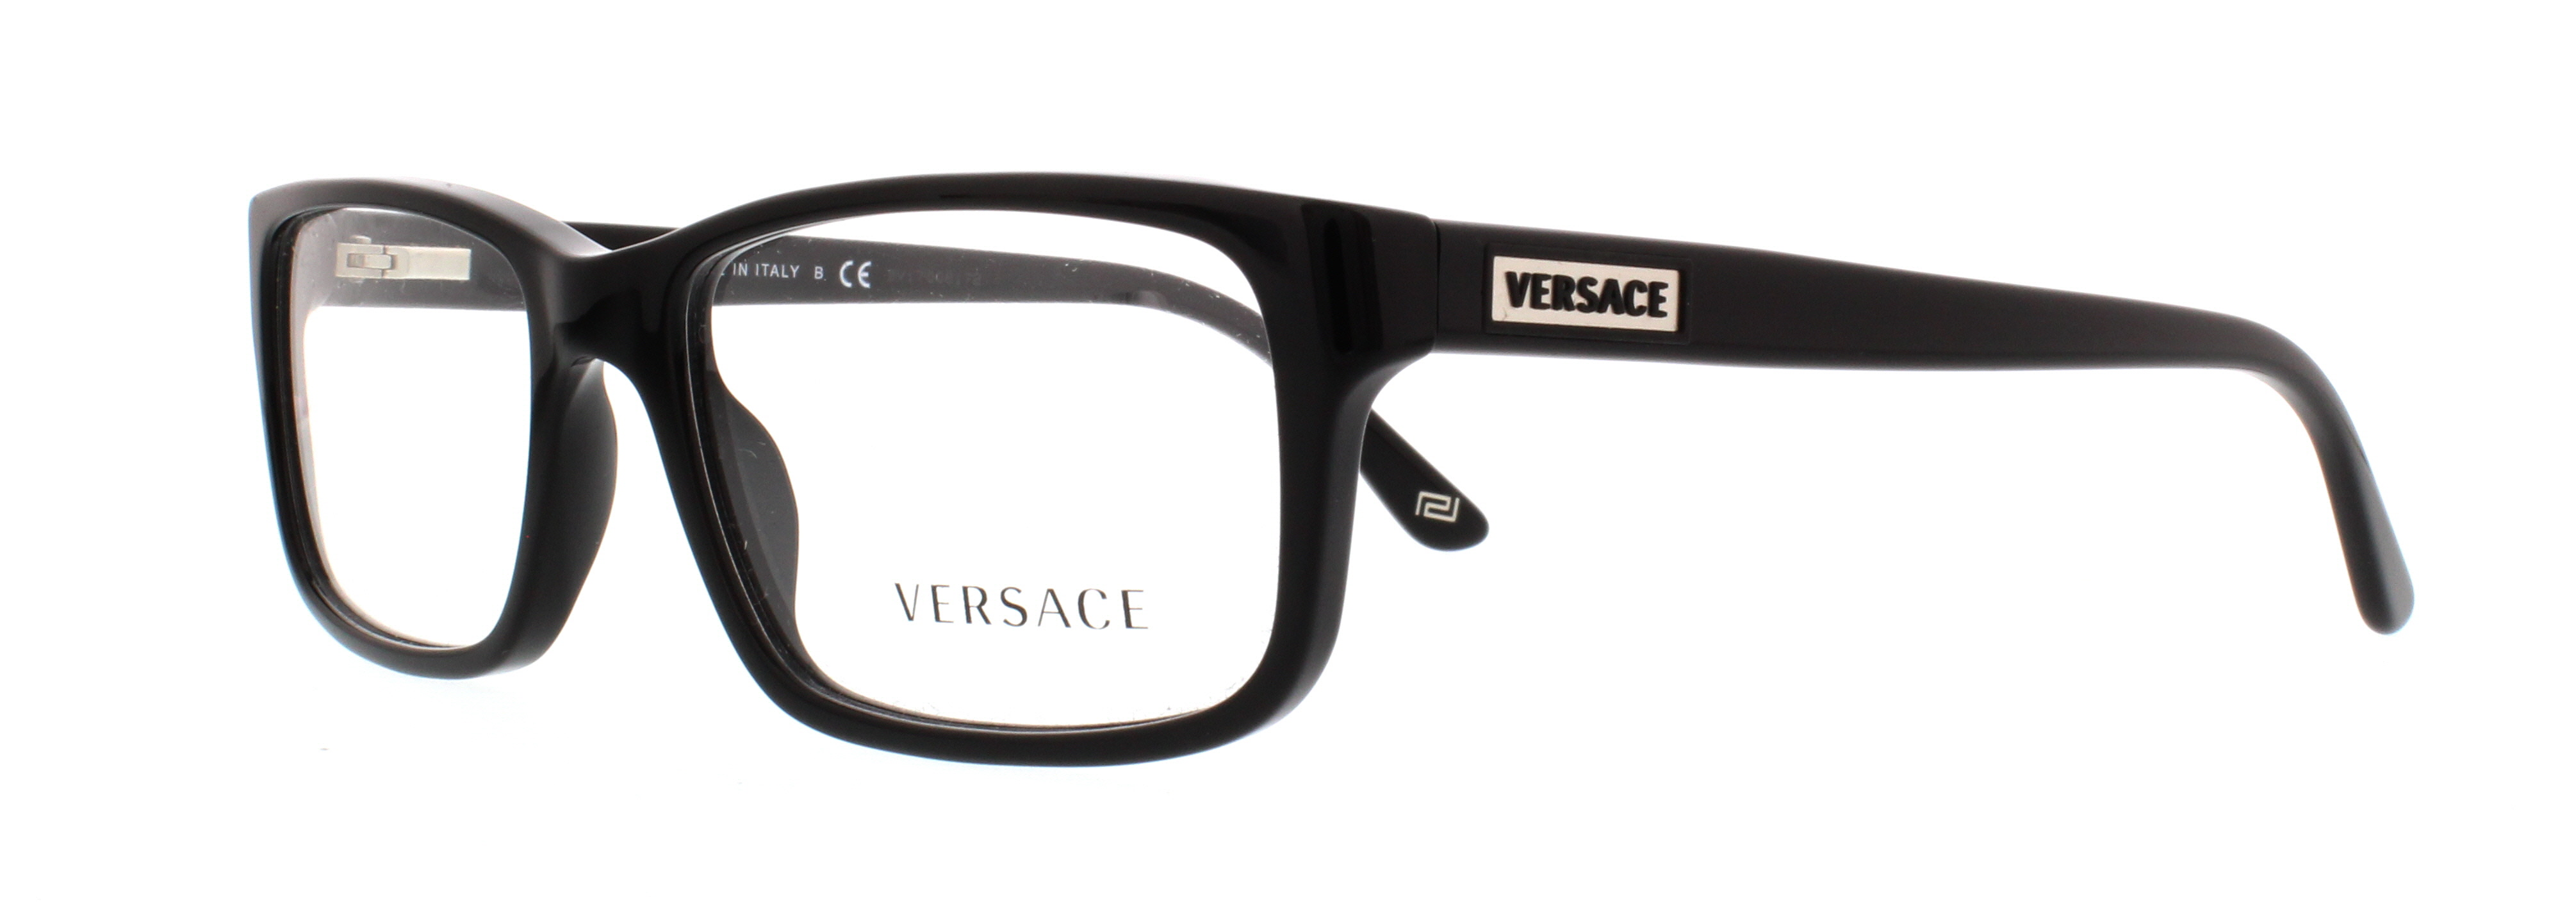 4484e1a9c9 Men - Designer Frames Outlet